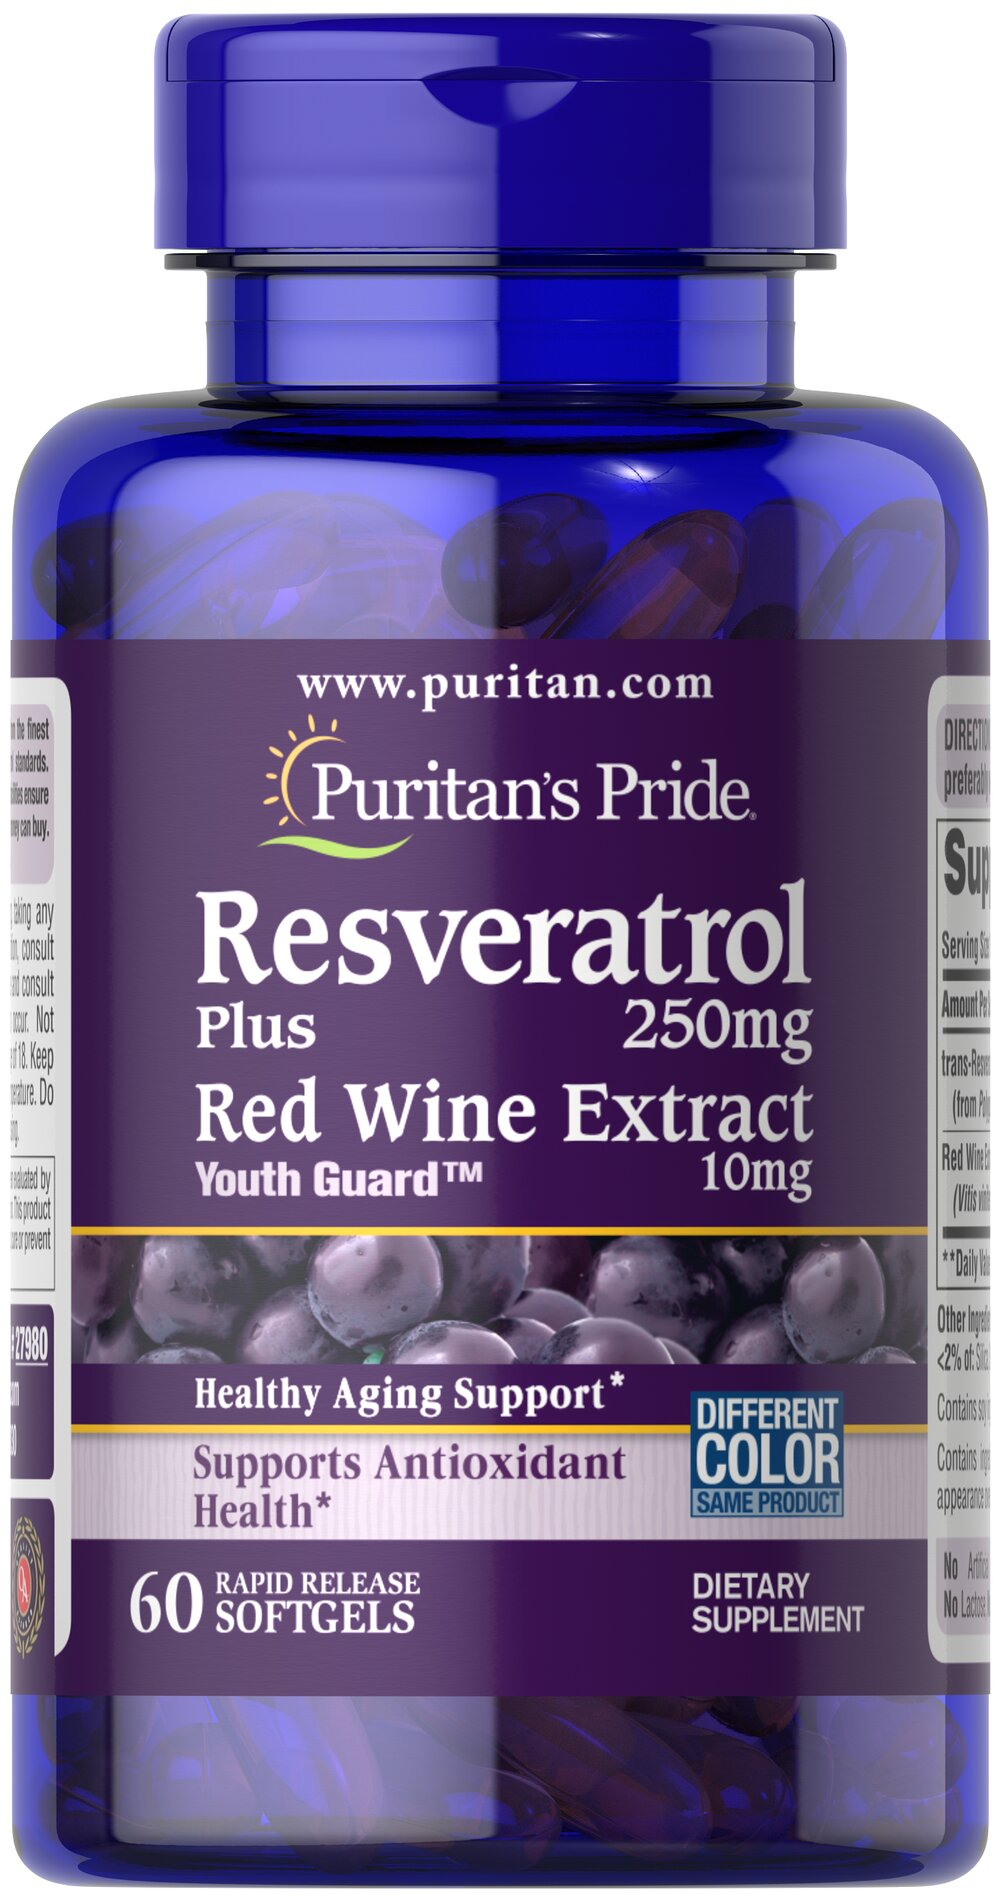 Resveratrol 250 mg <p>Resveratrol is the beneficial nutrient found in red wine</p><p>You'll get more Resveratrol in one of our capsules than you would from an entire bottle of red wine!</p><p>Maximum strength capsules are formulated for rapid  release into your system</p><p>Provides powerful antioxidant support**</p><p>Helps fight against cell-damaging free radicals**</p> 60 Softgels 250 mg $47.99